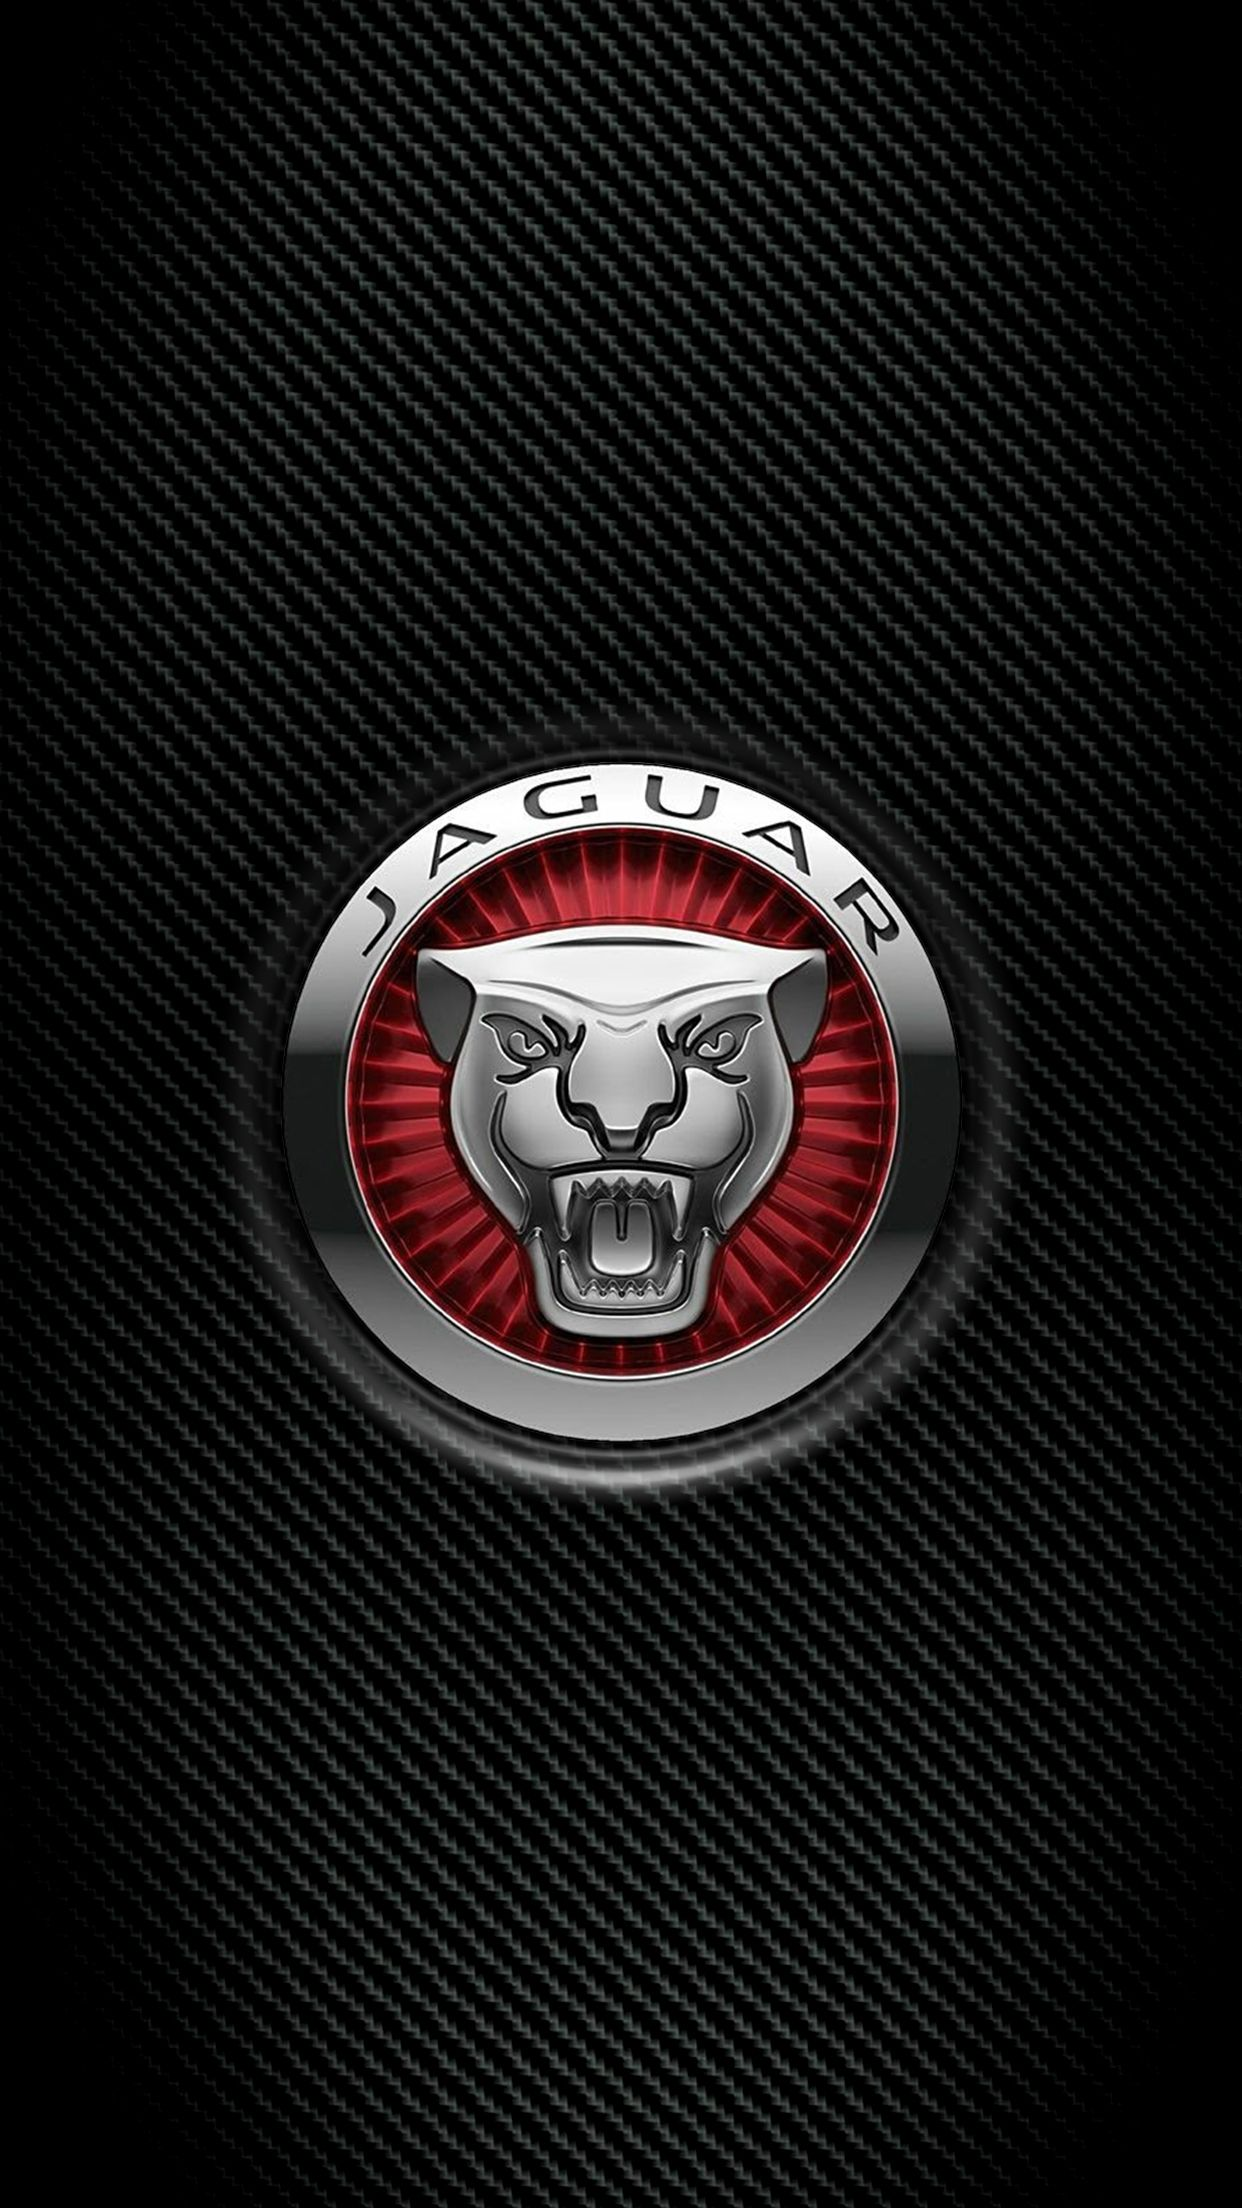 Jaguar logo wallpaperscreen saver for smartphone jaguar land jaguar logo wallpaperscreen saver for smartphone biocorpaavc Gallery